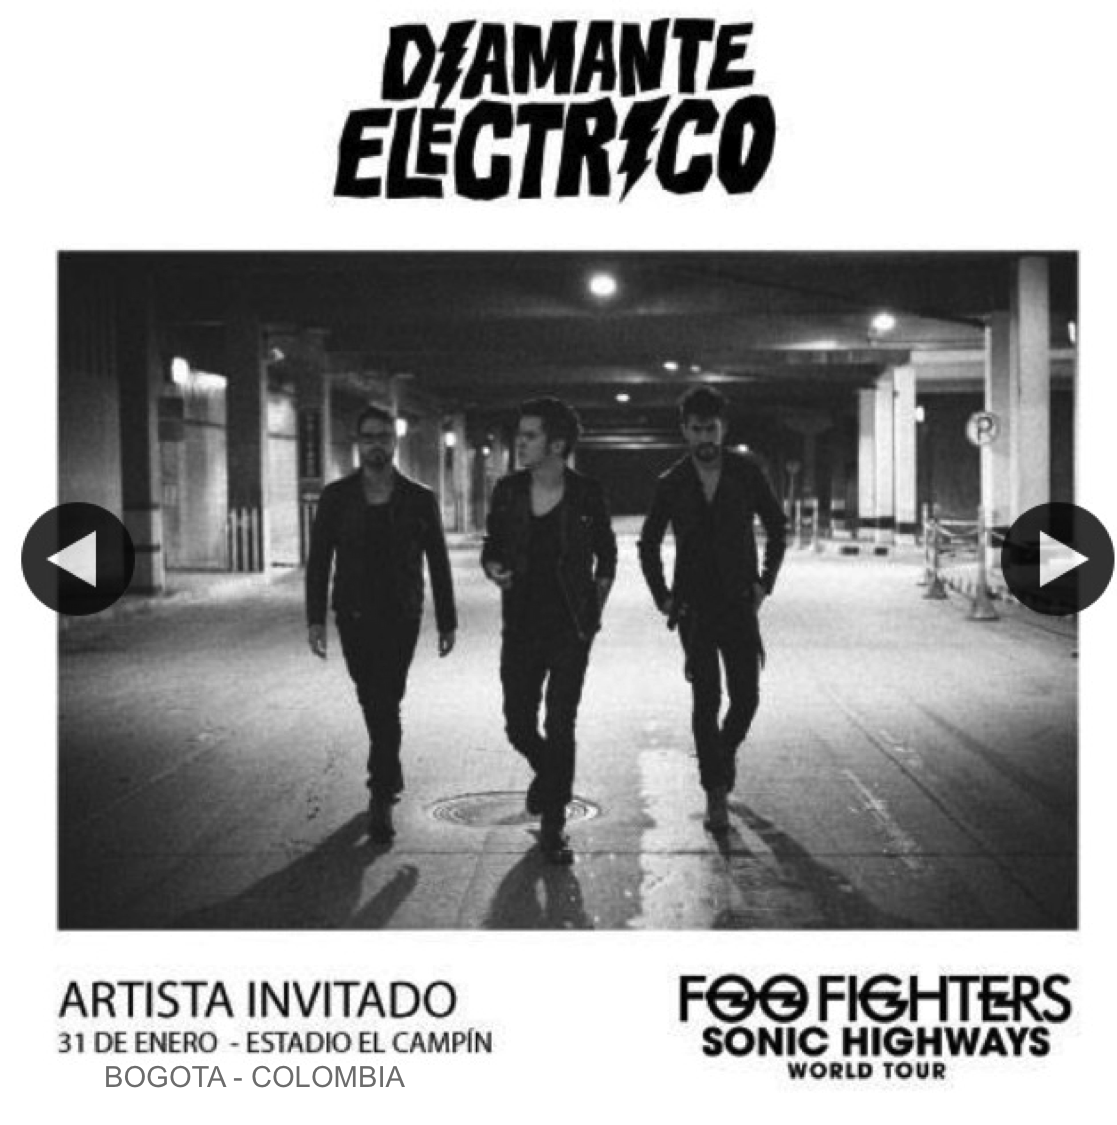 DIAMANTE ELECTRICO  - Foo Fighters .jpg